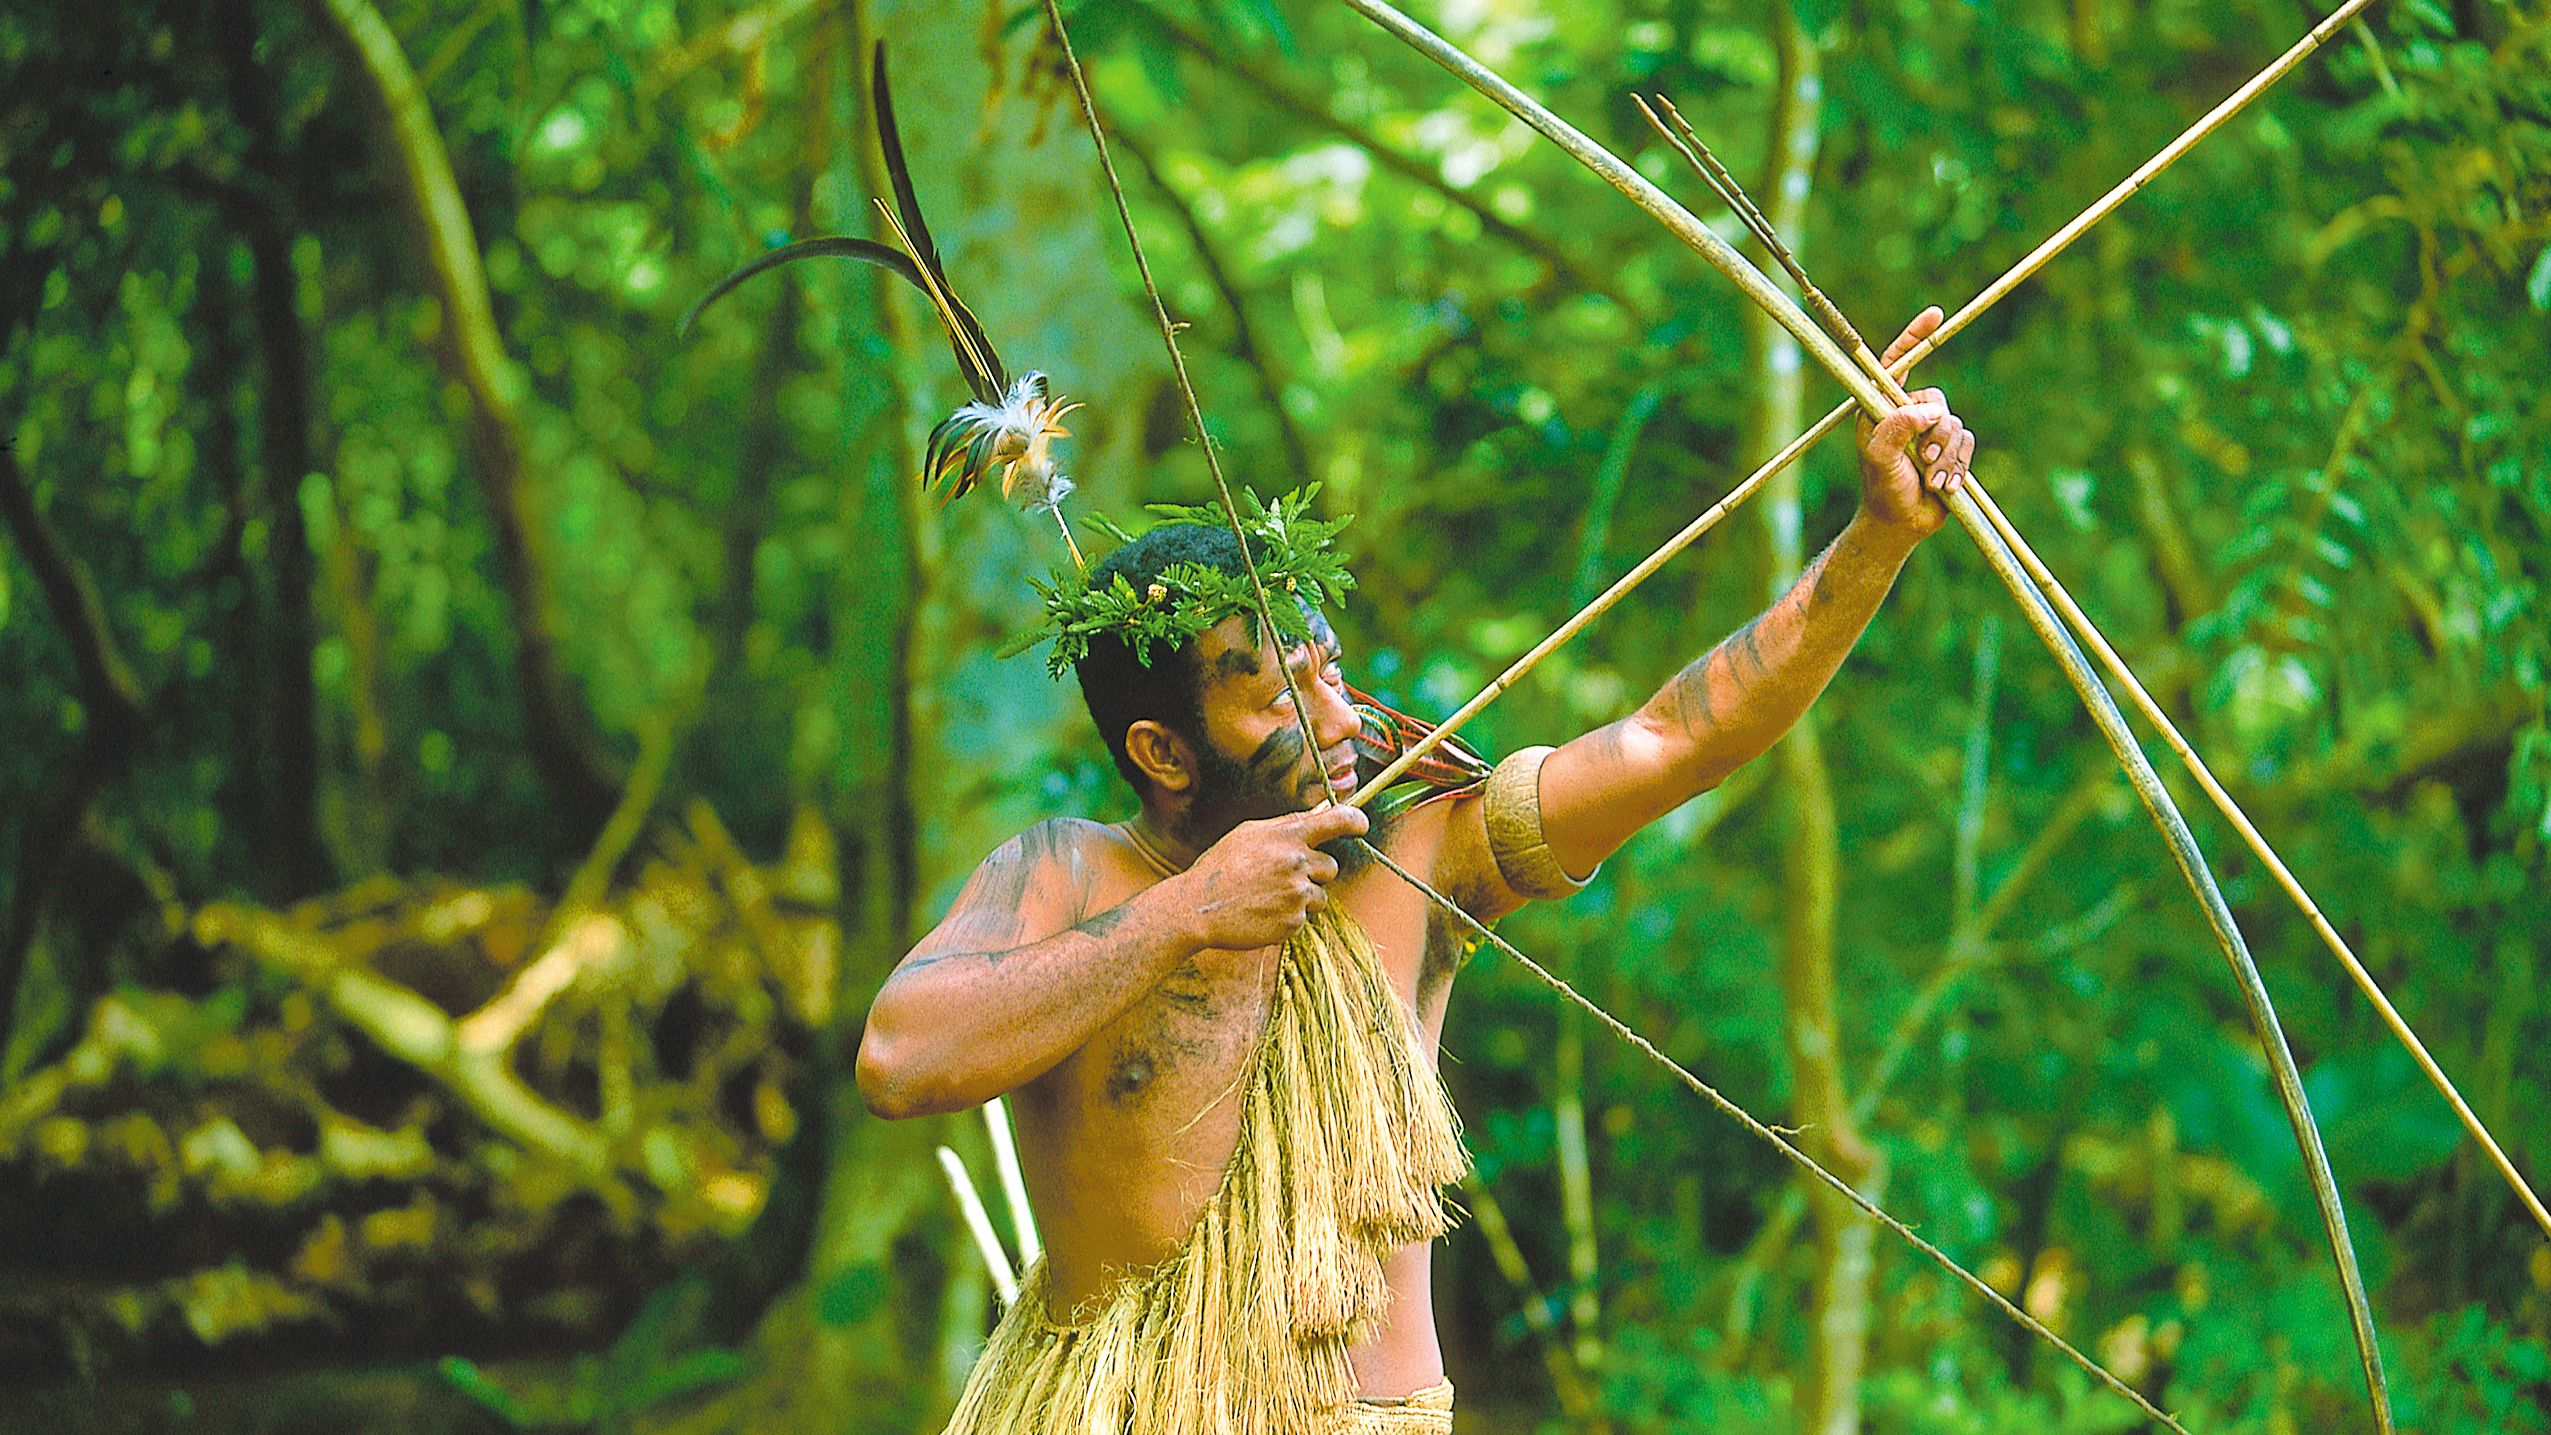 Men dressed in indigenous clothing to Vanuatu Island and holding a bow and arrow